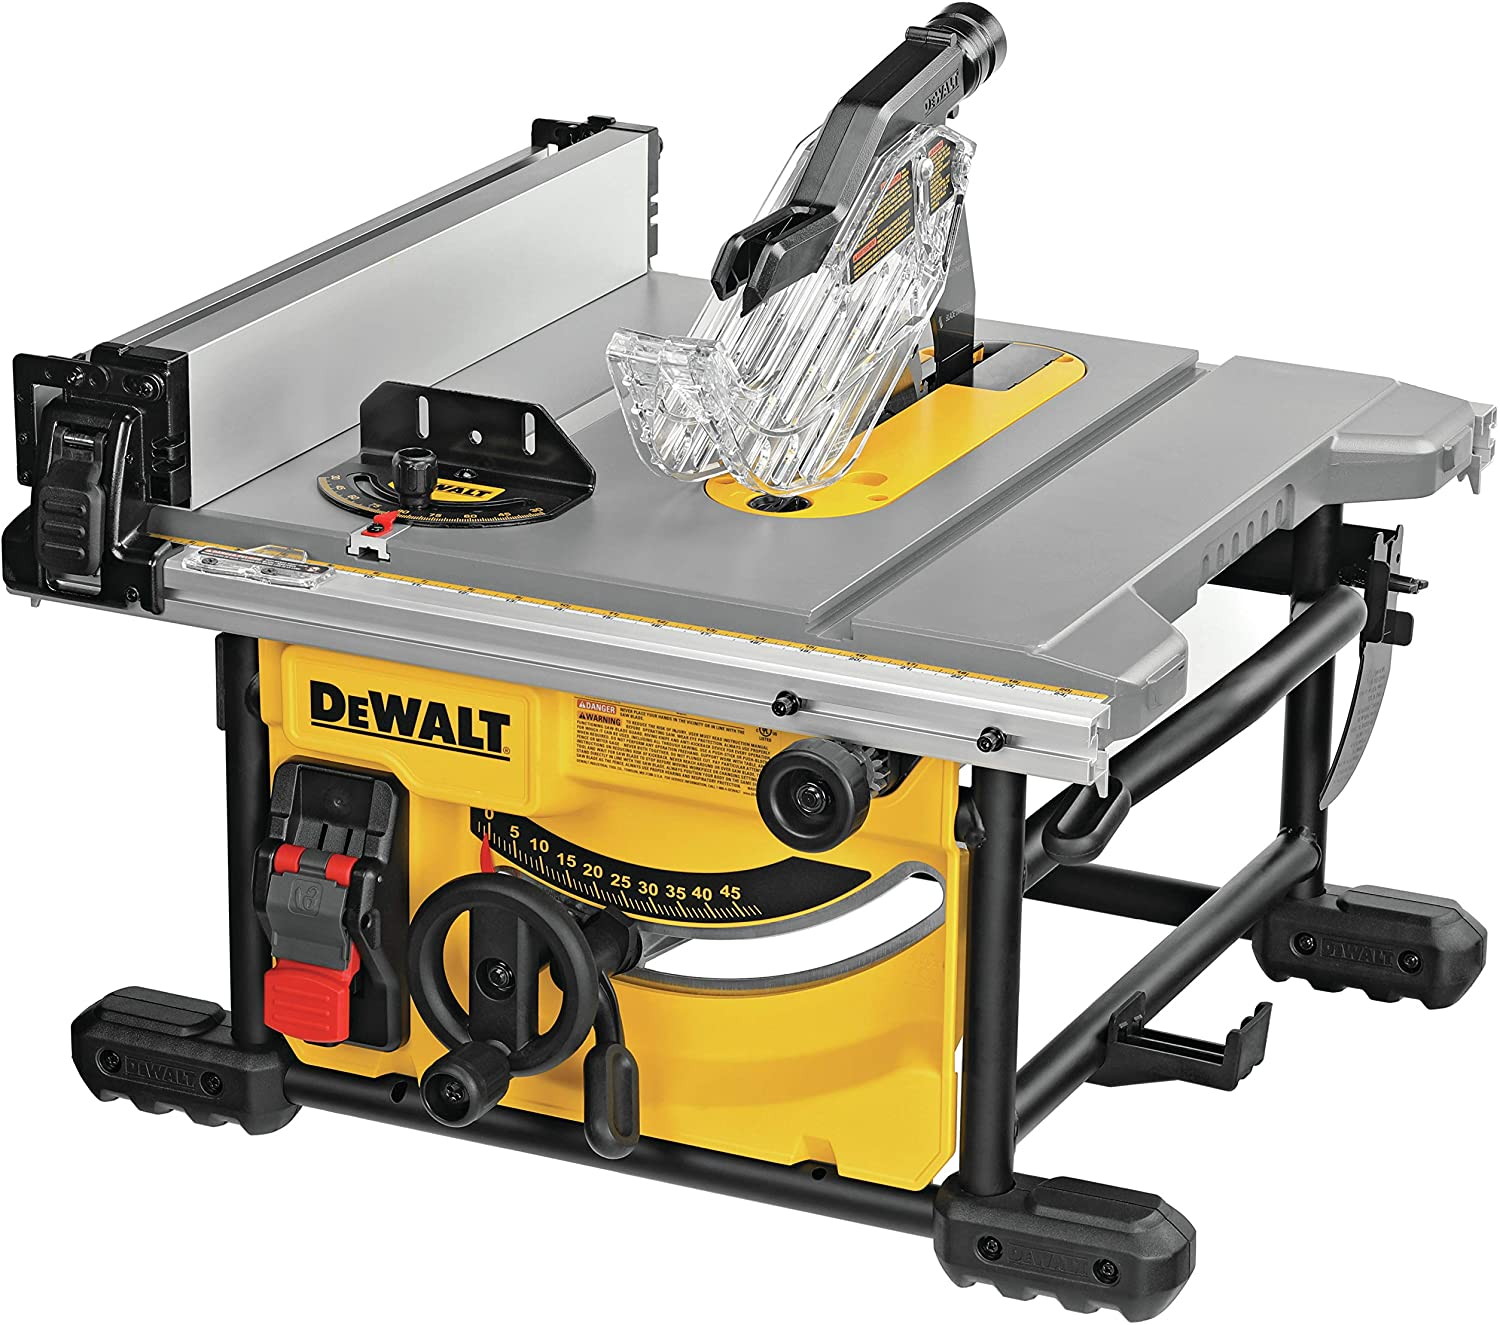 7. DEWALT Table Saw